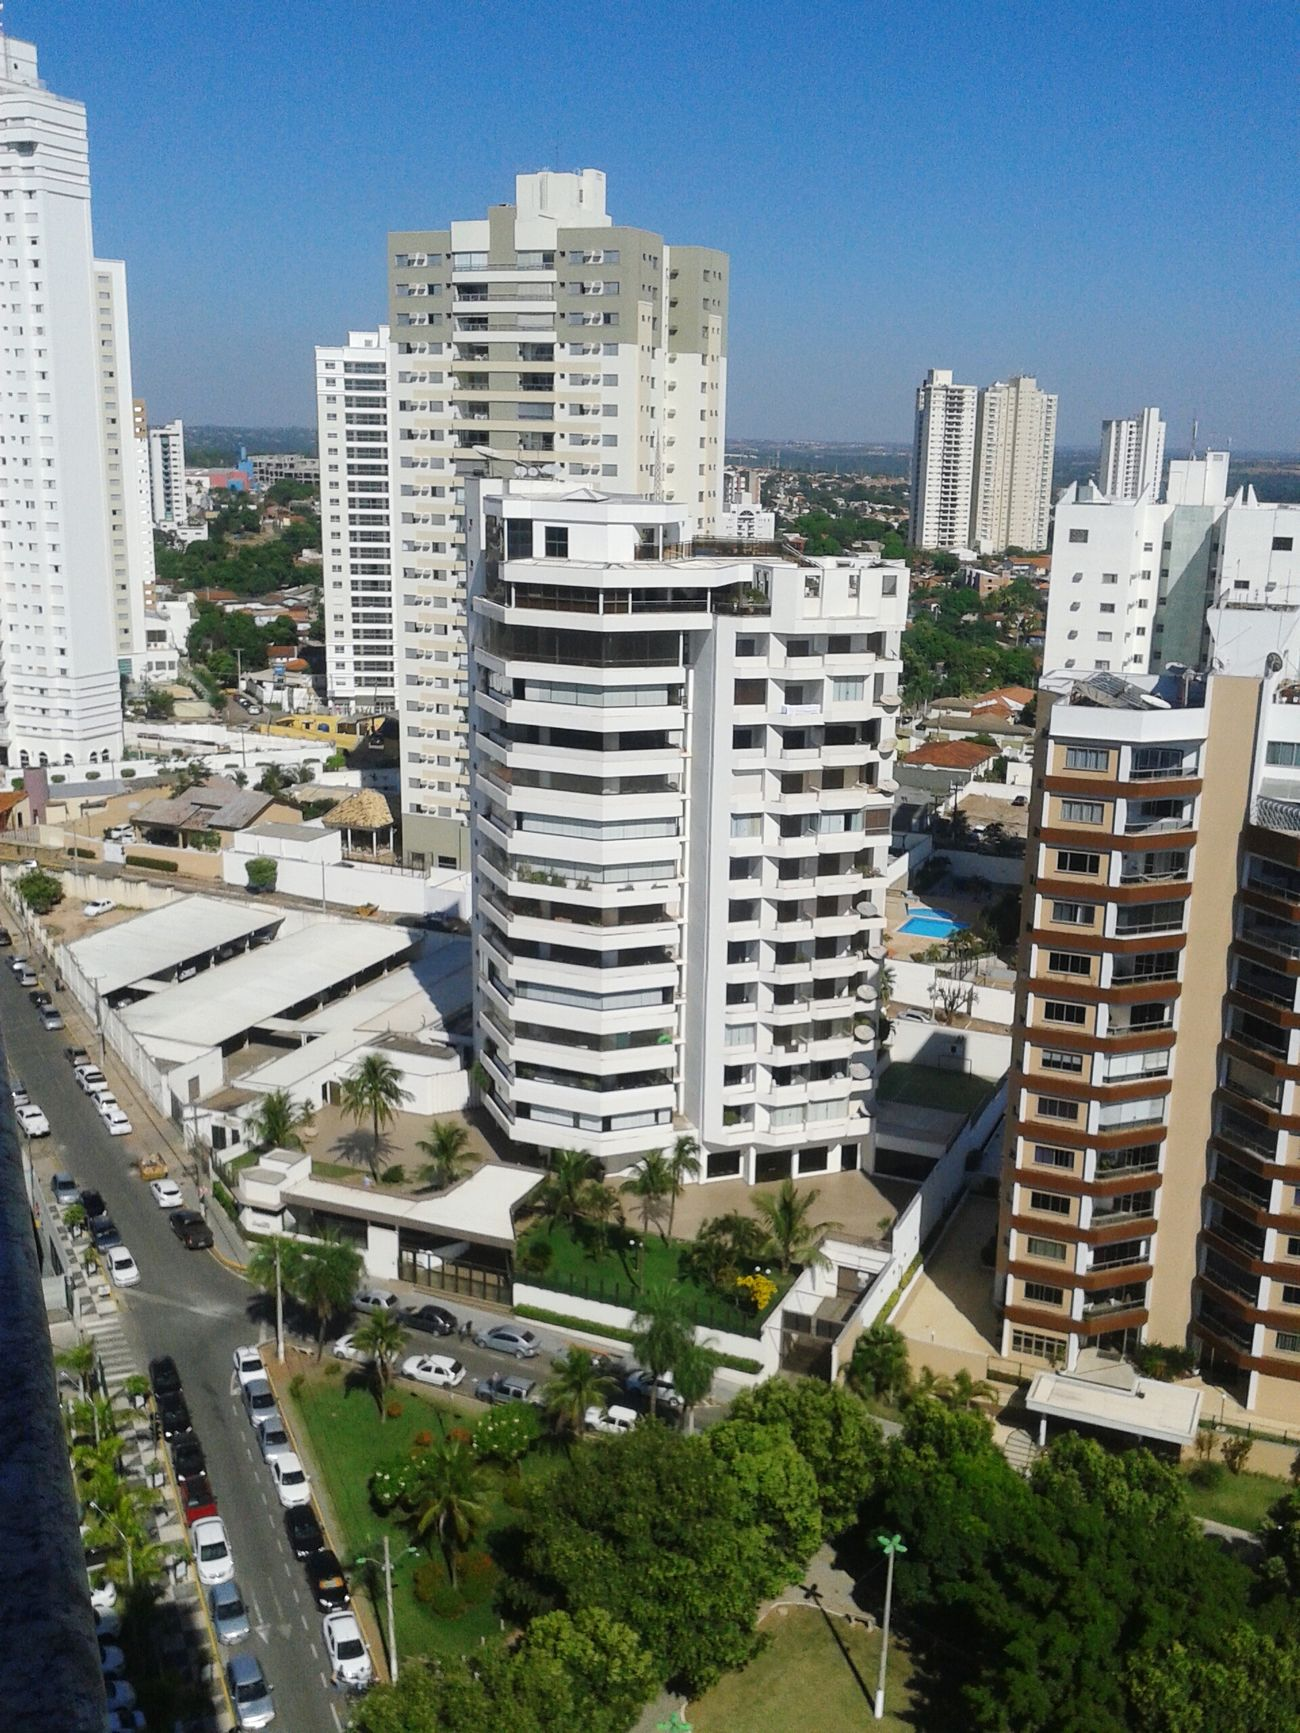 Good Morning Cuiabá CuiabáCity Maisumdia